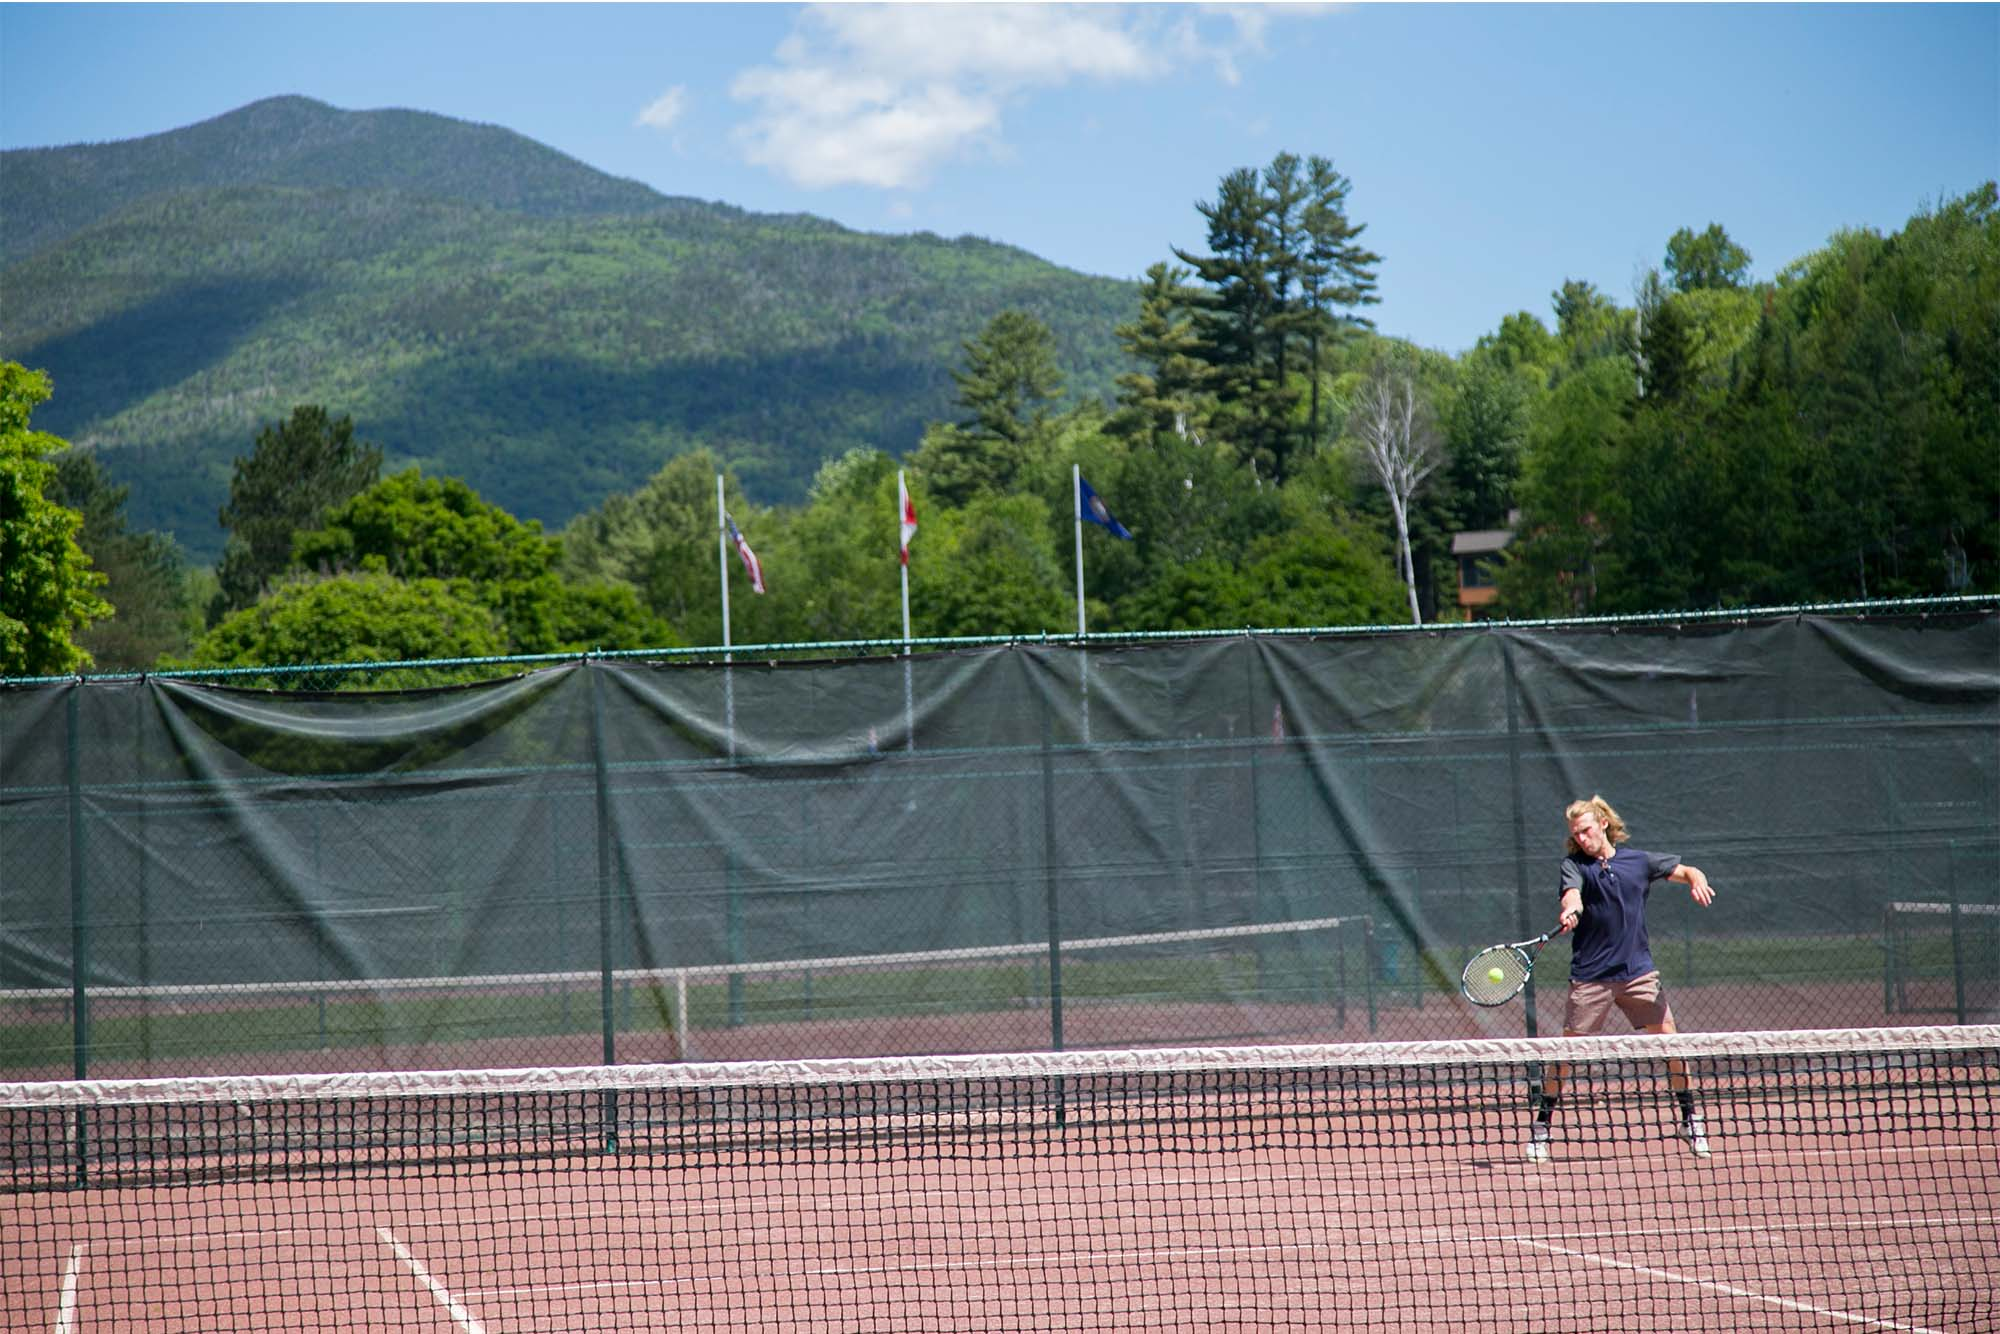 Waterville Valley Tennis